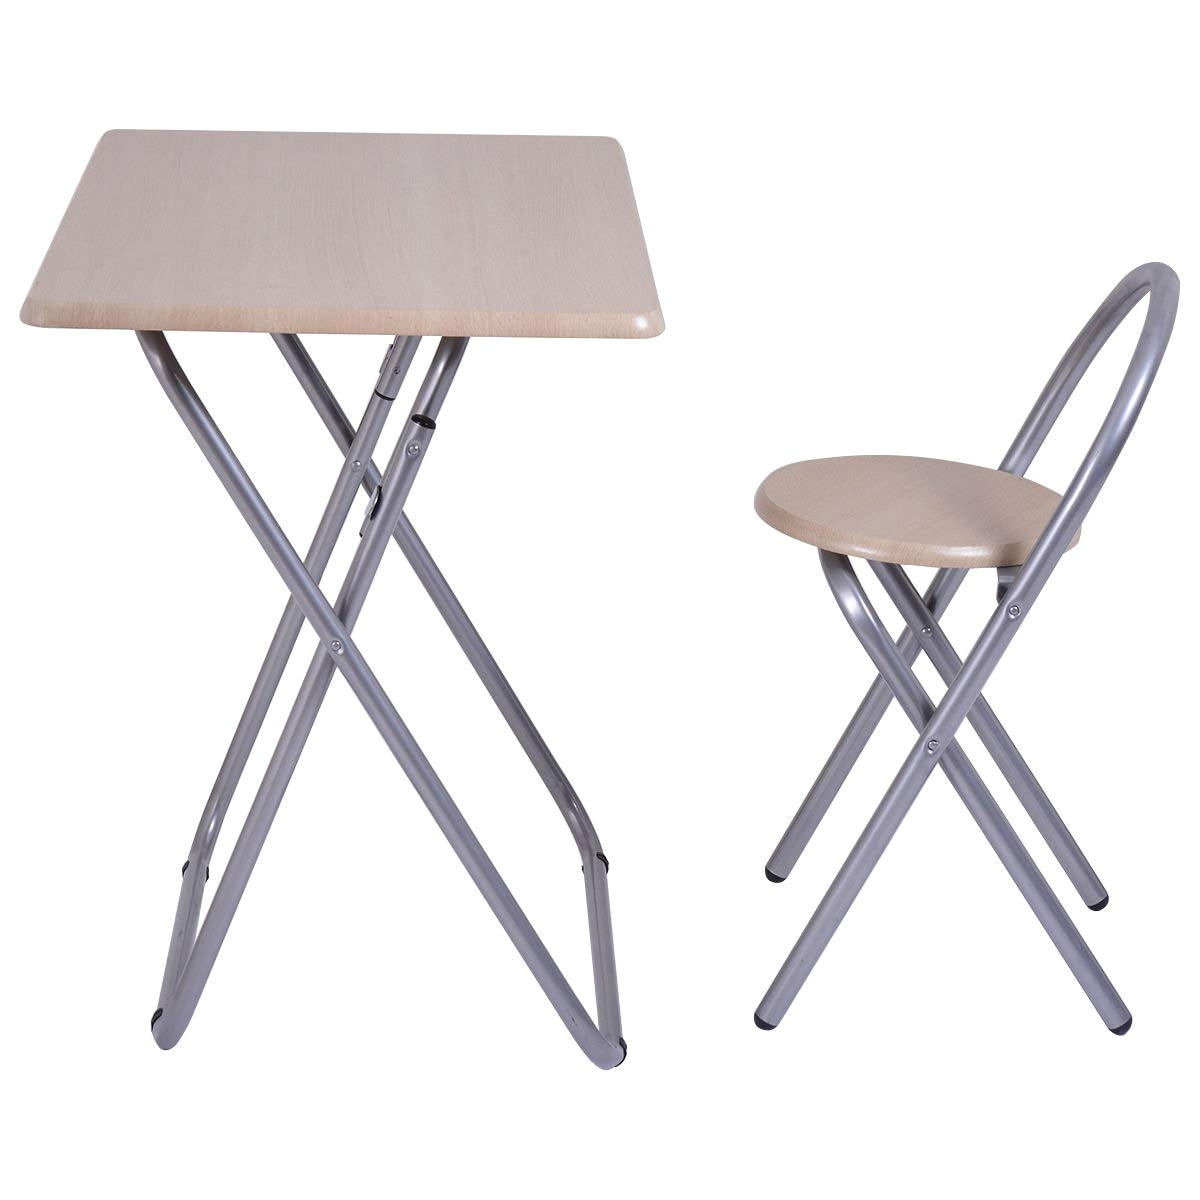 Kid Table and Chair Rentals Near Me Amazon Com Kids Study Writing Desk Table Chair Set Folding Student